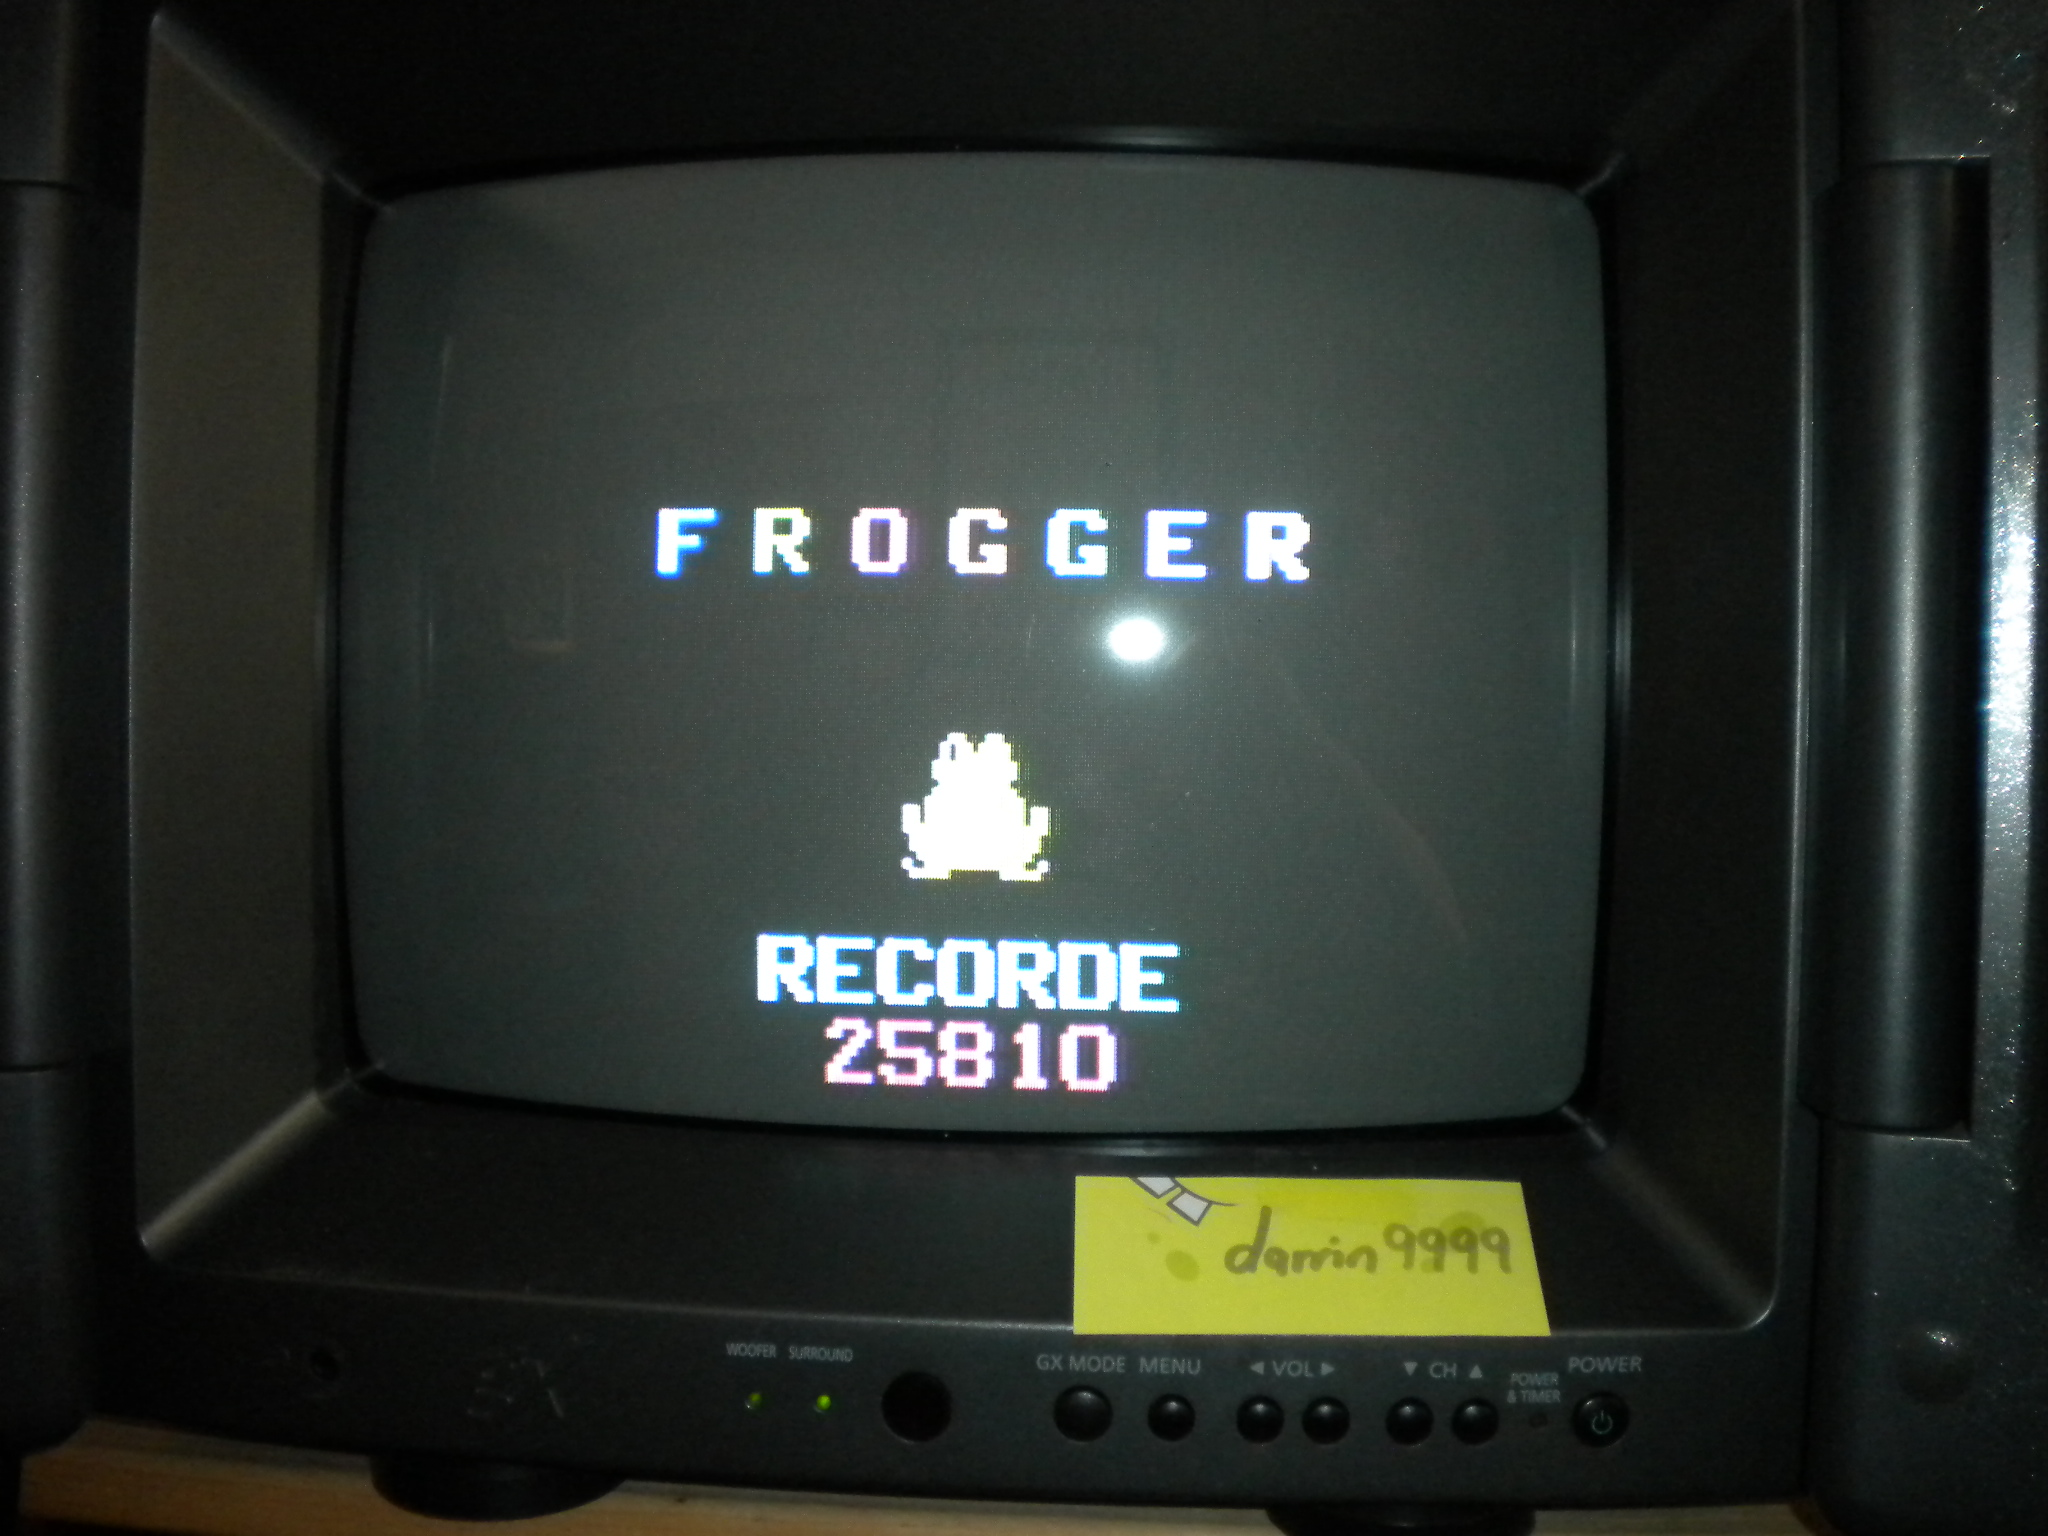 Frogger 25,810 points